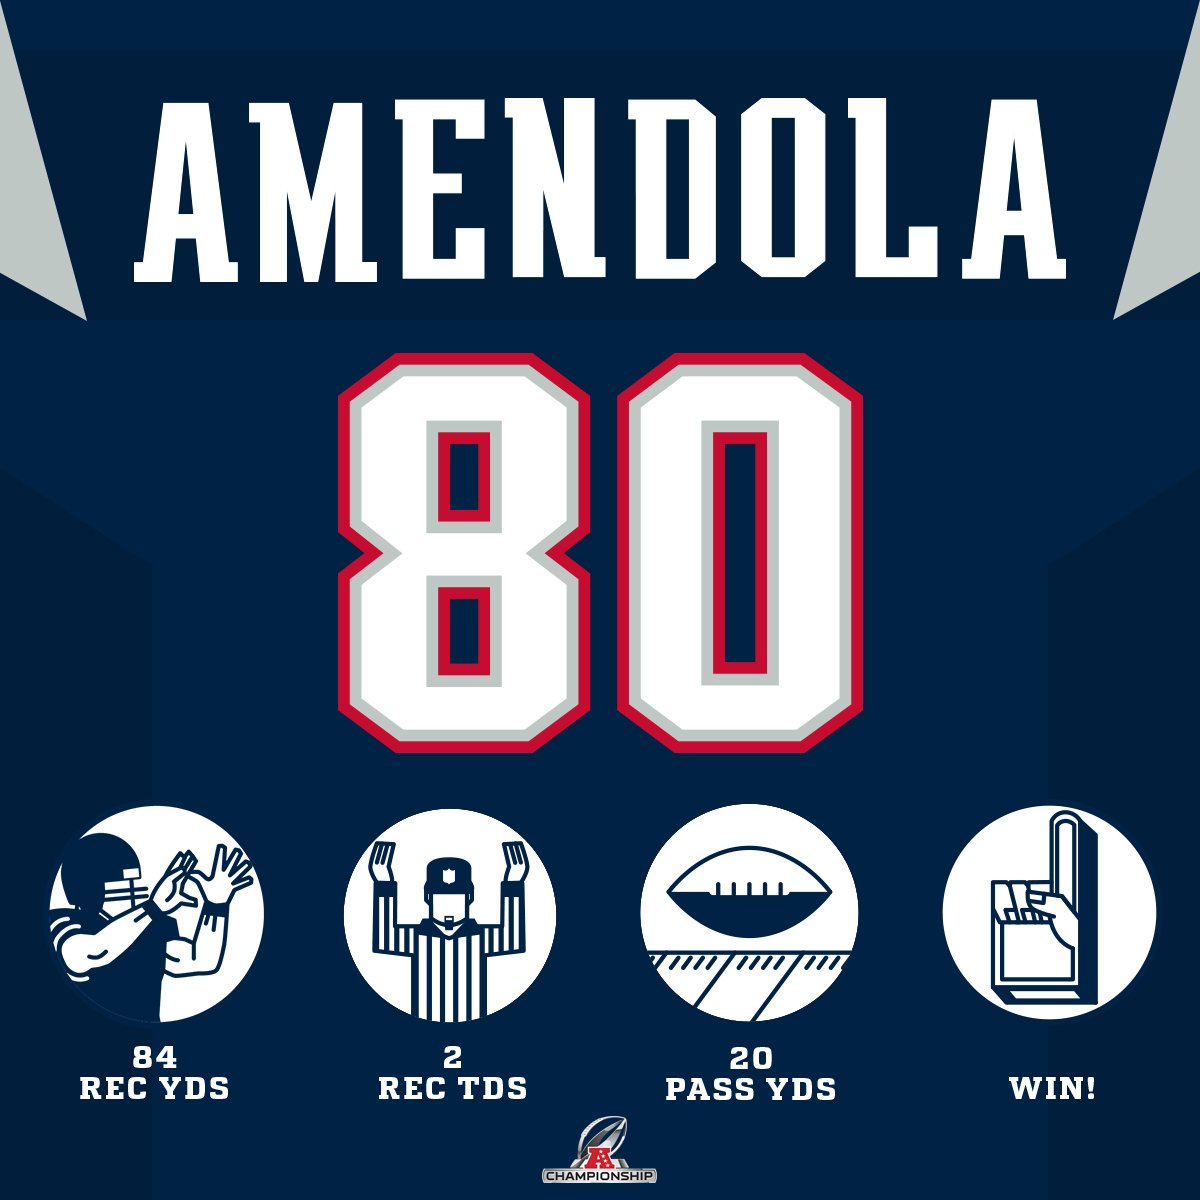 RT @NFL: HUGE Day for @Patriots WR @DannyAmendola! #HaveADay #GoPats #NotDone #SBLII https://t.co/MrPXJ5SOIu